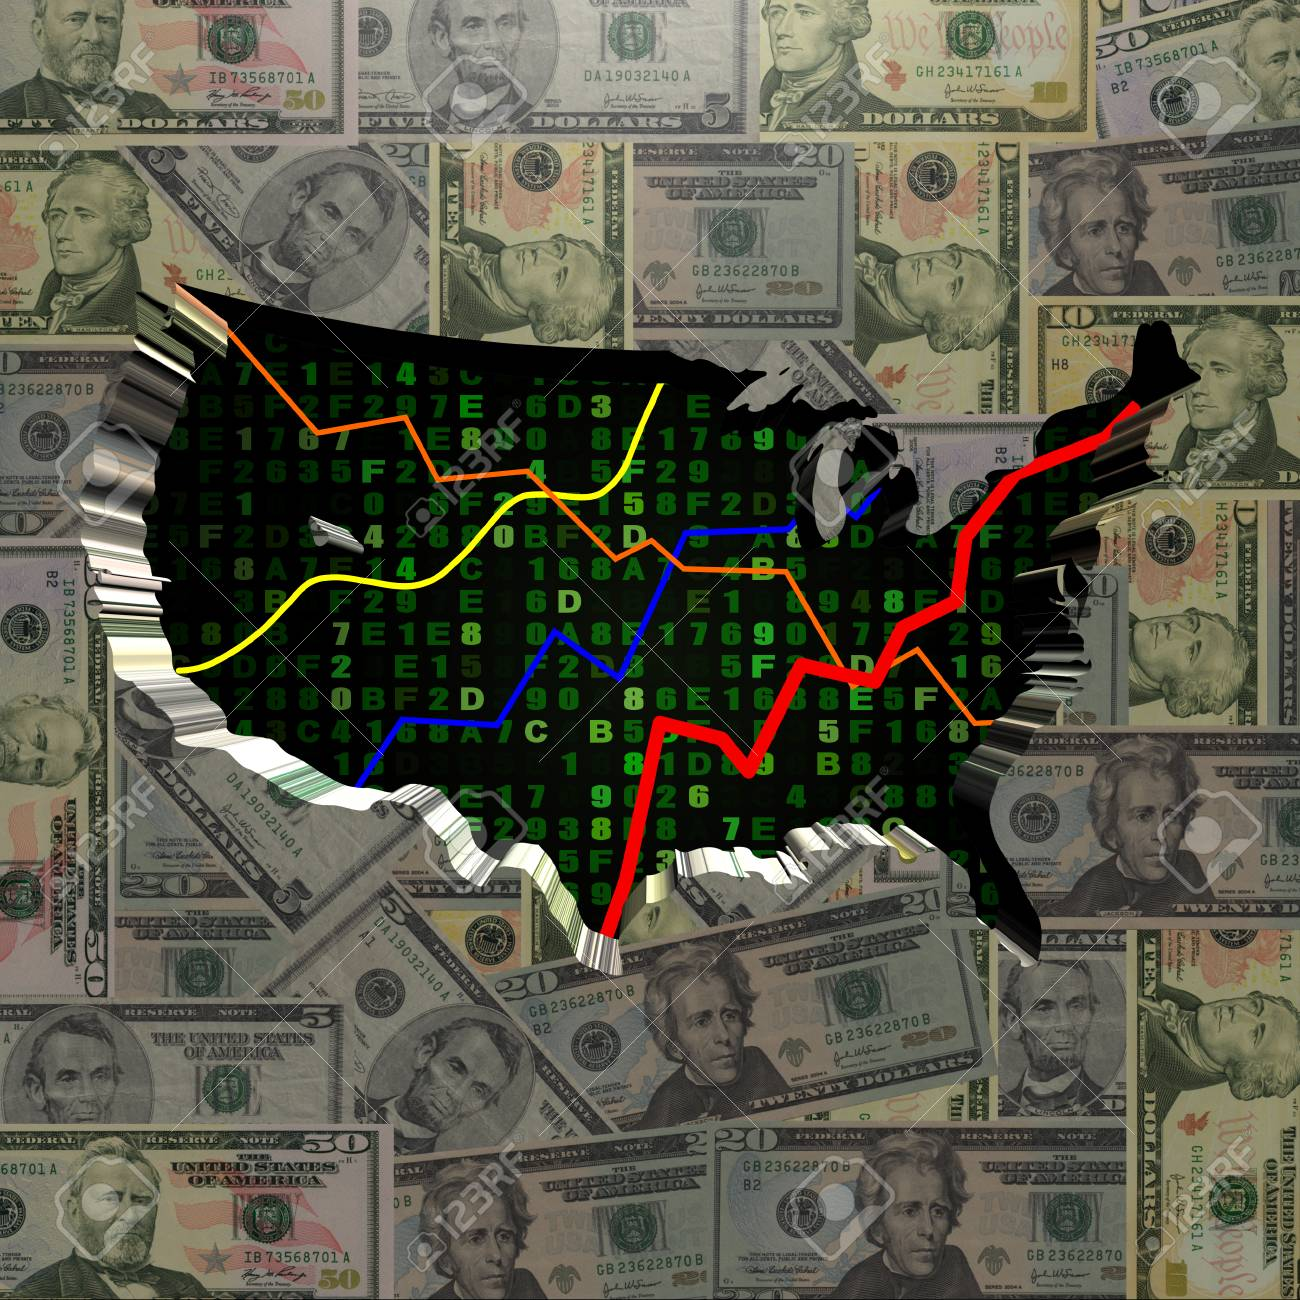 USA Map With Hex Code And Graphs On Dollars Illustration Stock Photo ...